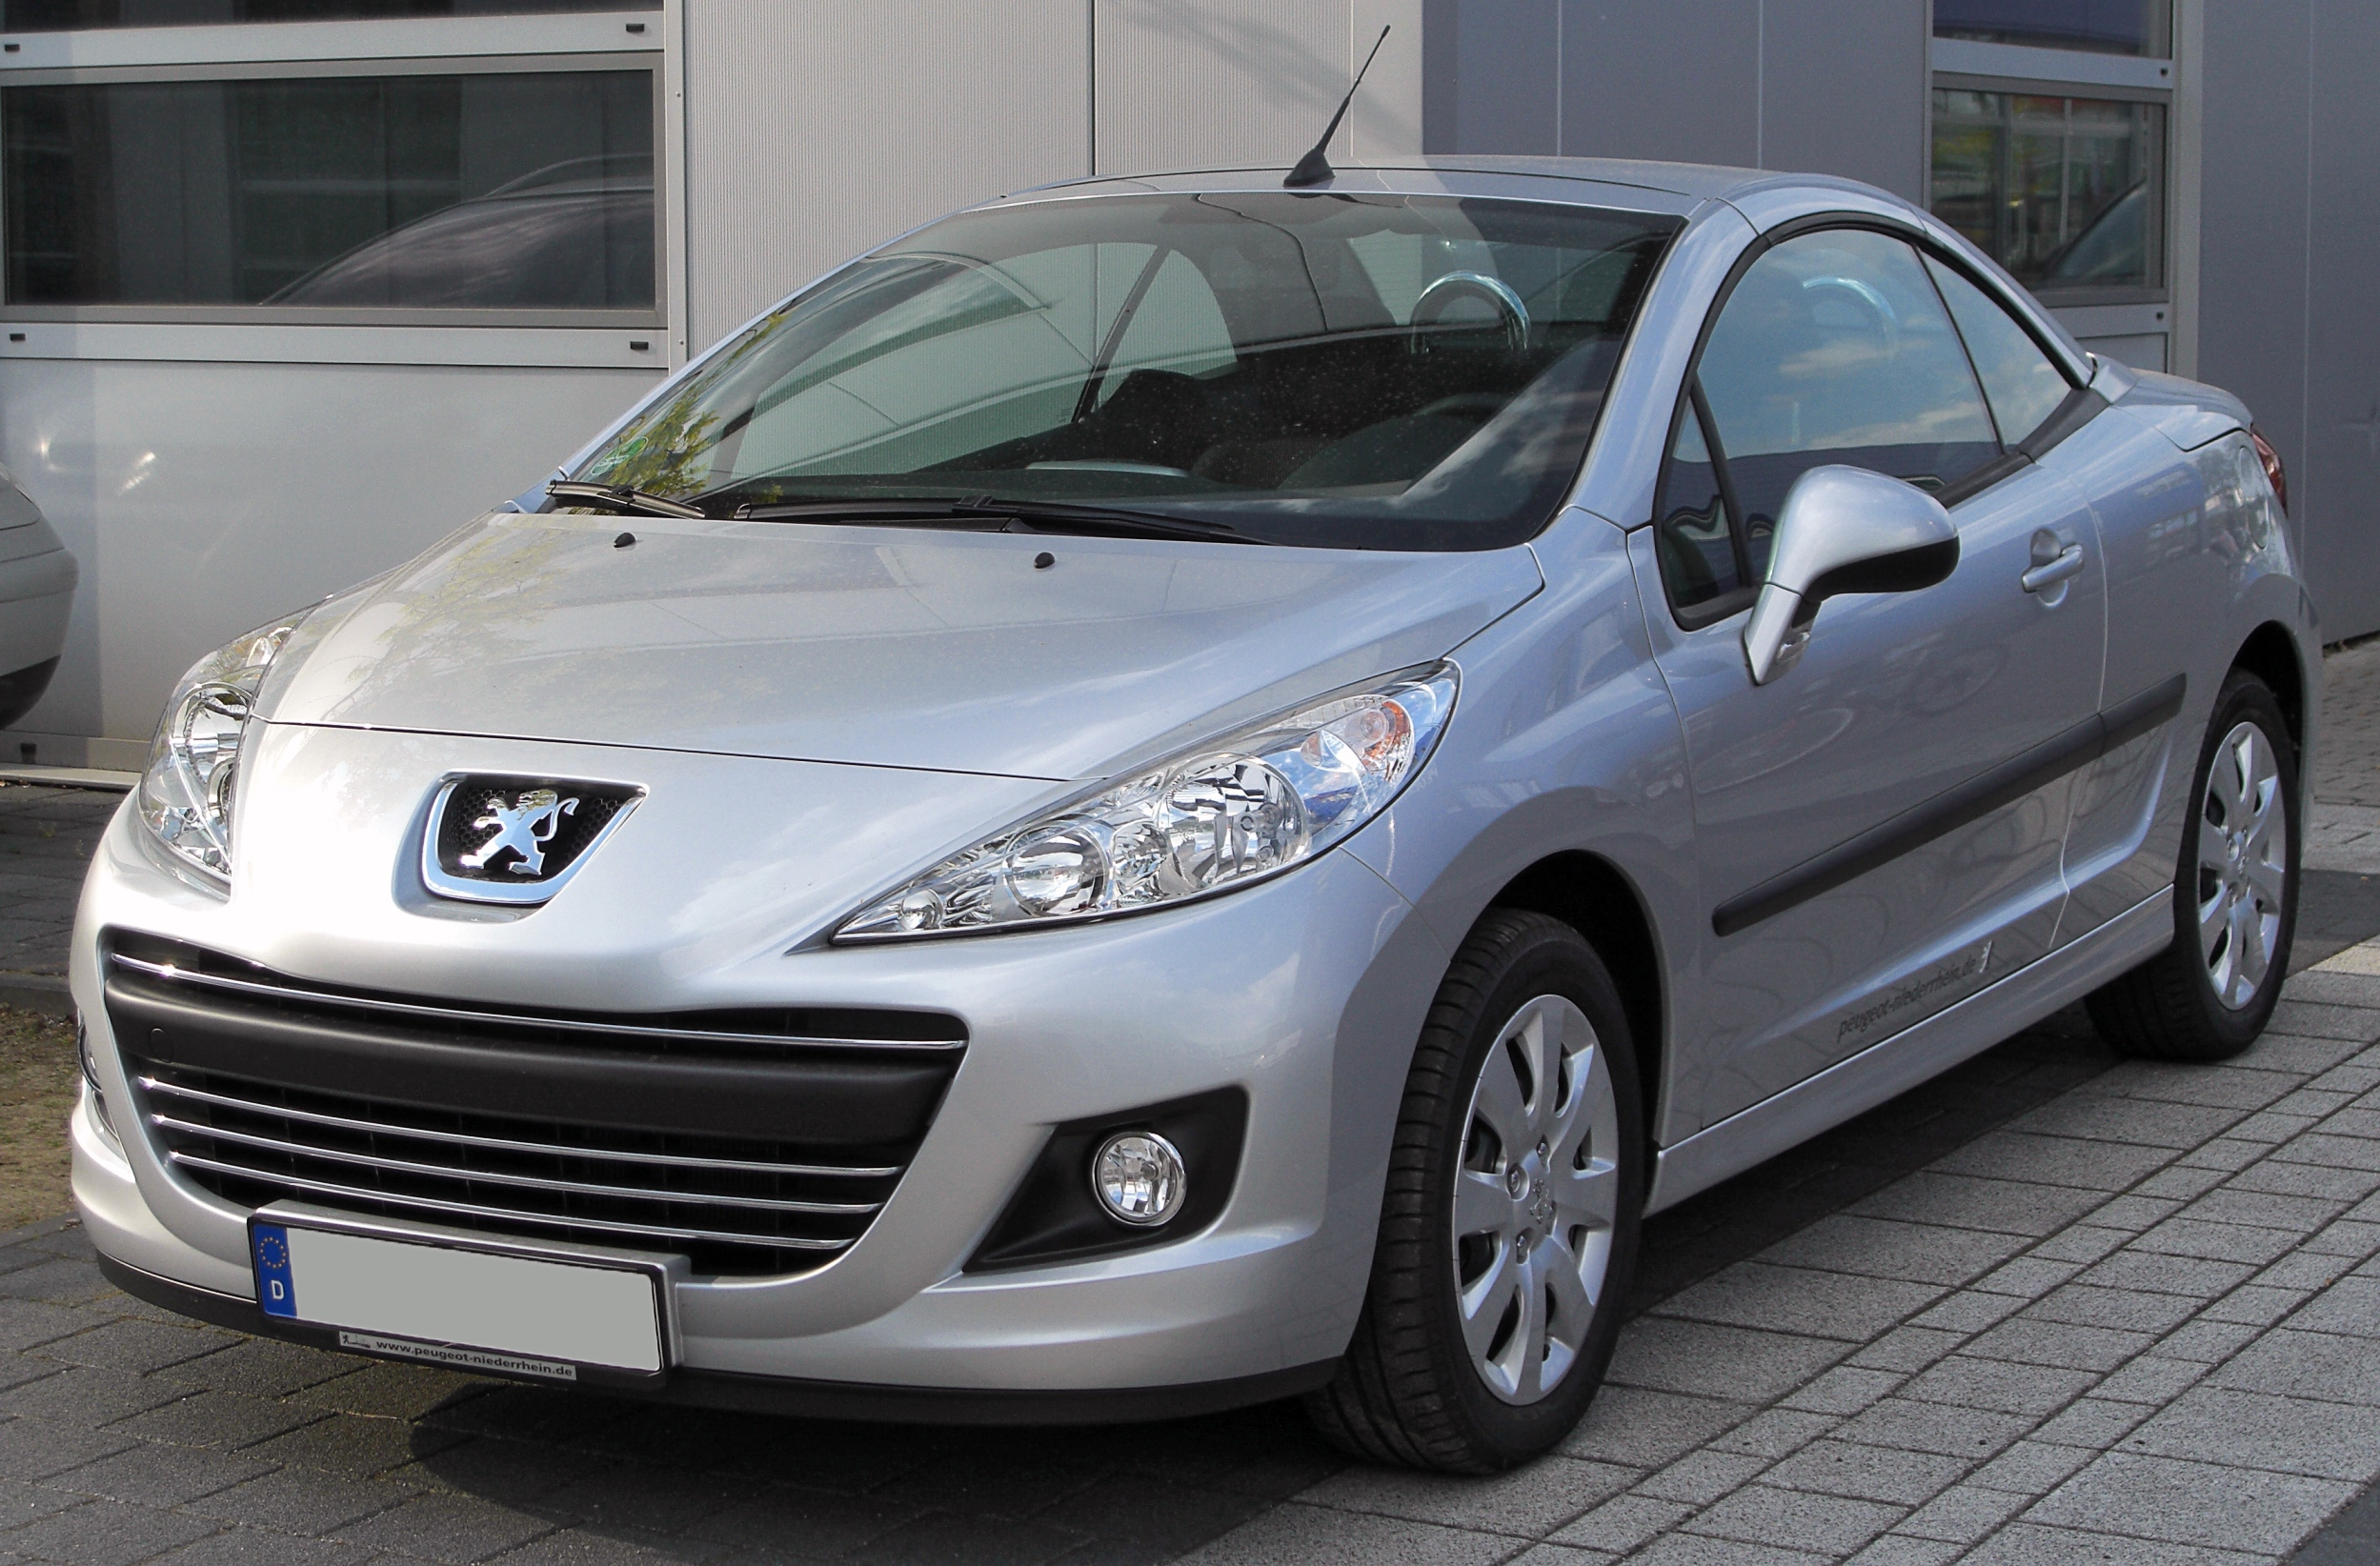 2010 peugeot 207 cc pictures information and specs. Black Bedroom Furniture Sets. Home Design Ideas